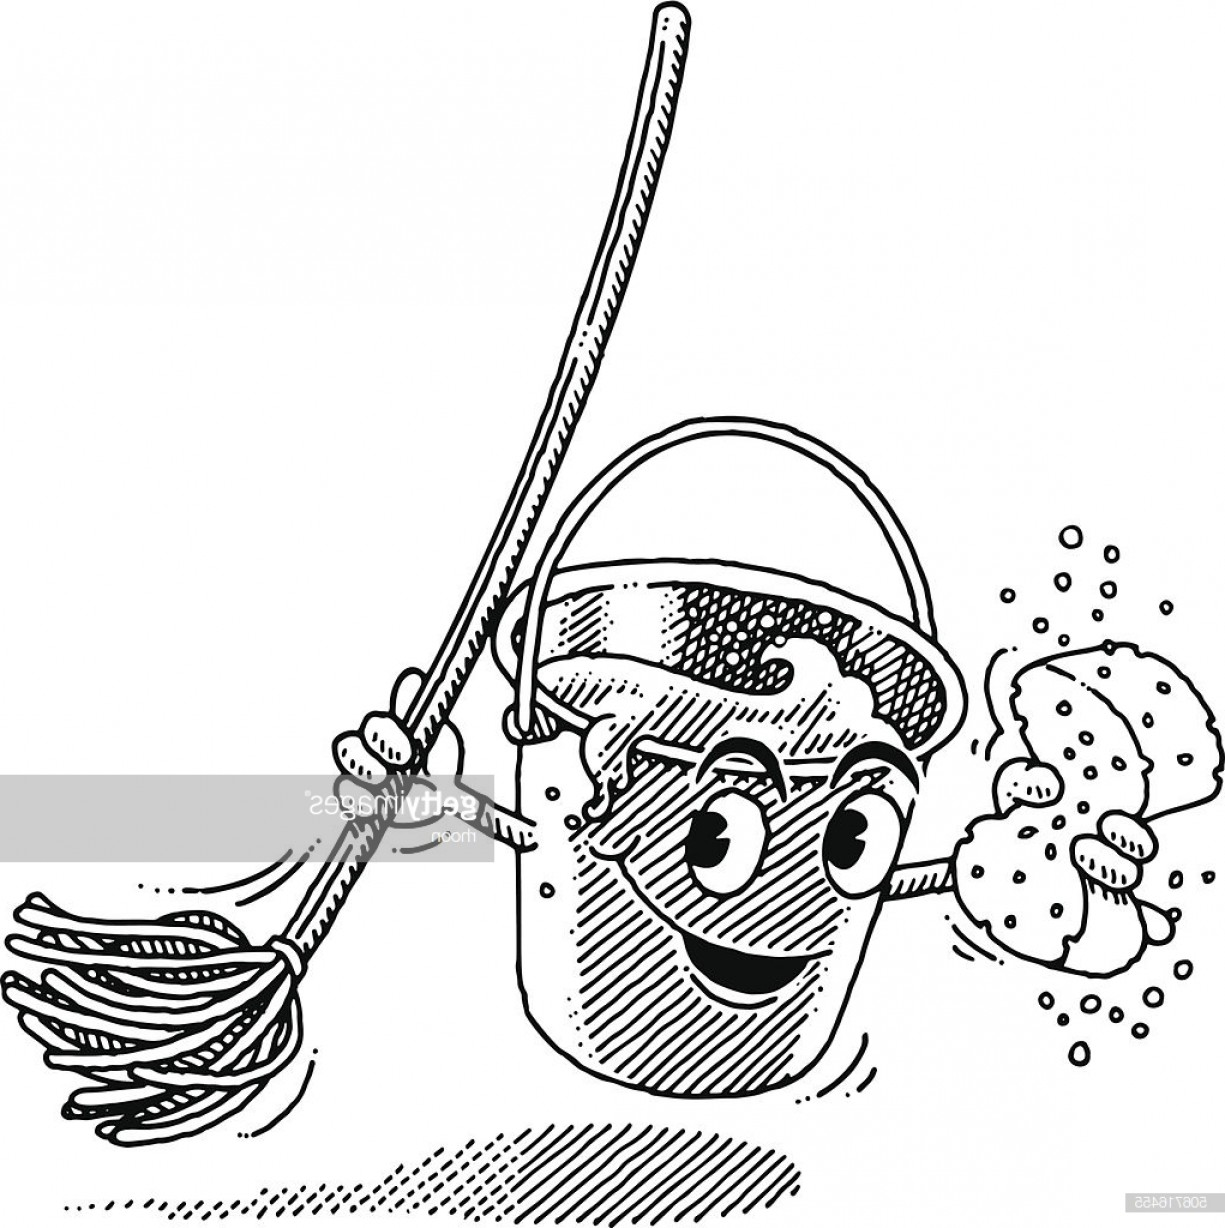 Mop And Bucket Clip Art Vector: Digital Illustration Of Mop And Bucket Illustration